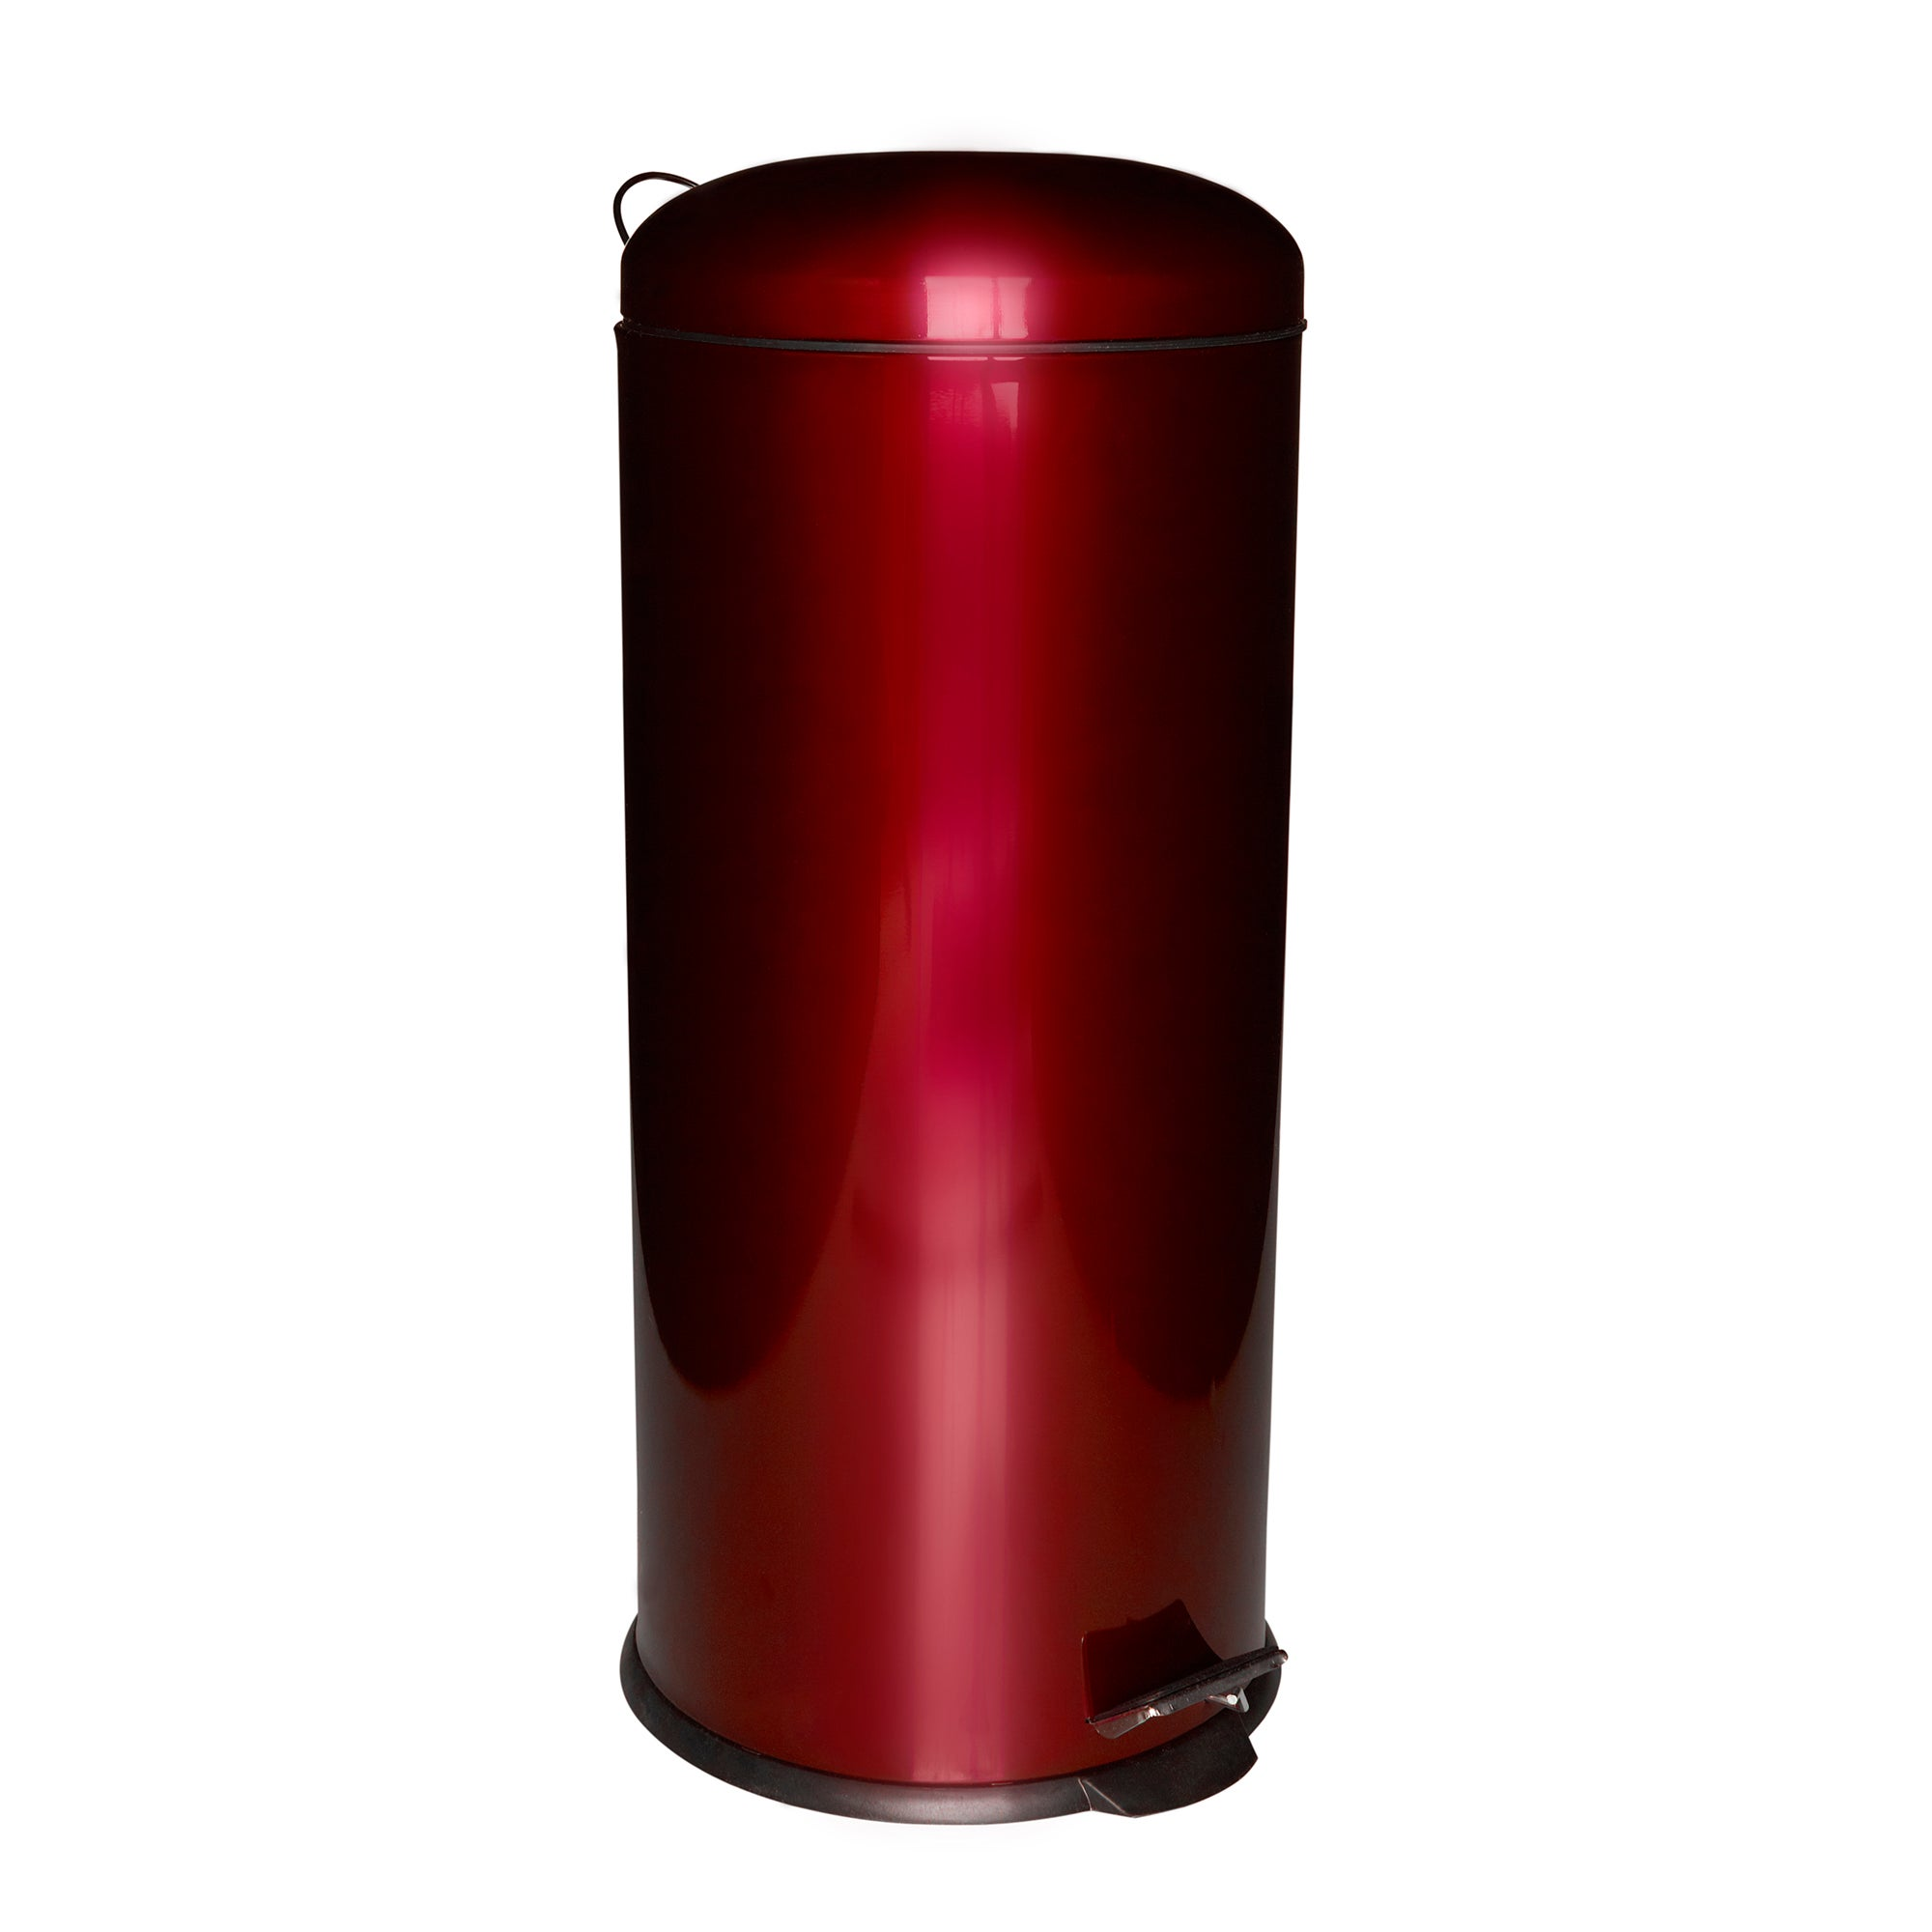 Red Spectrum Collection Metallic 30 Litre Pedal Bin